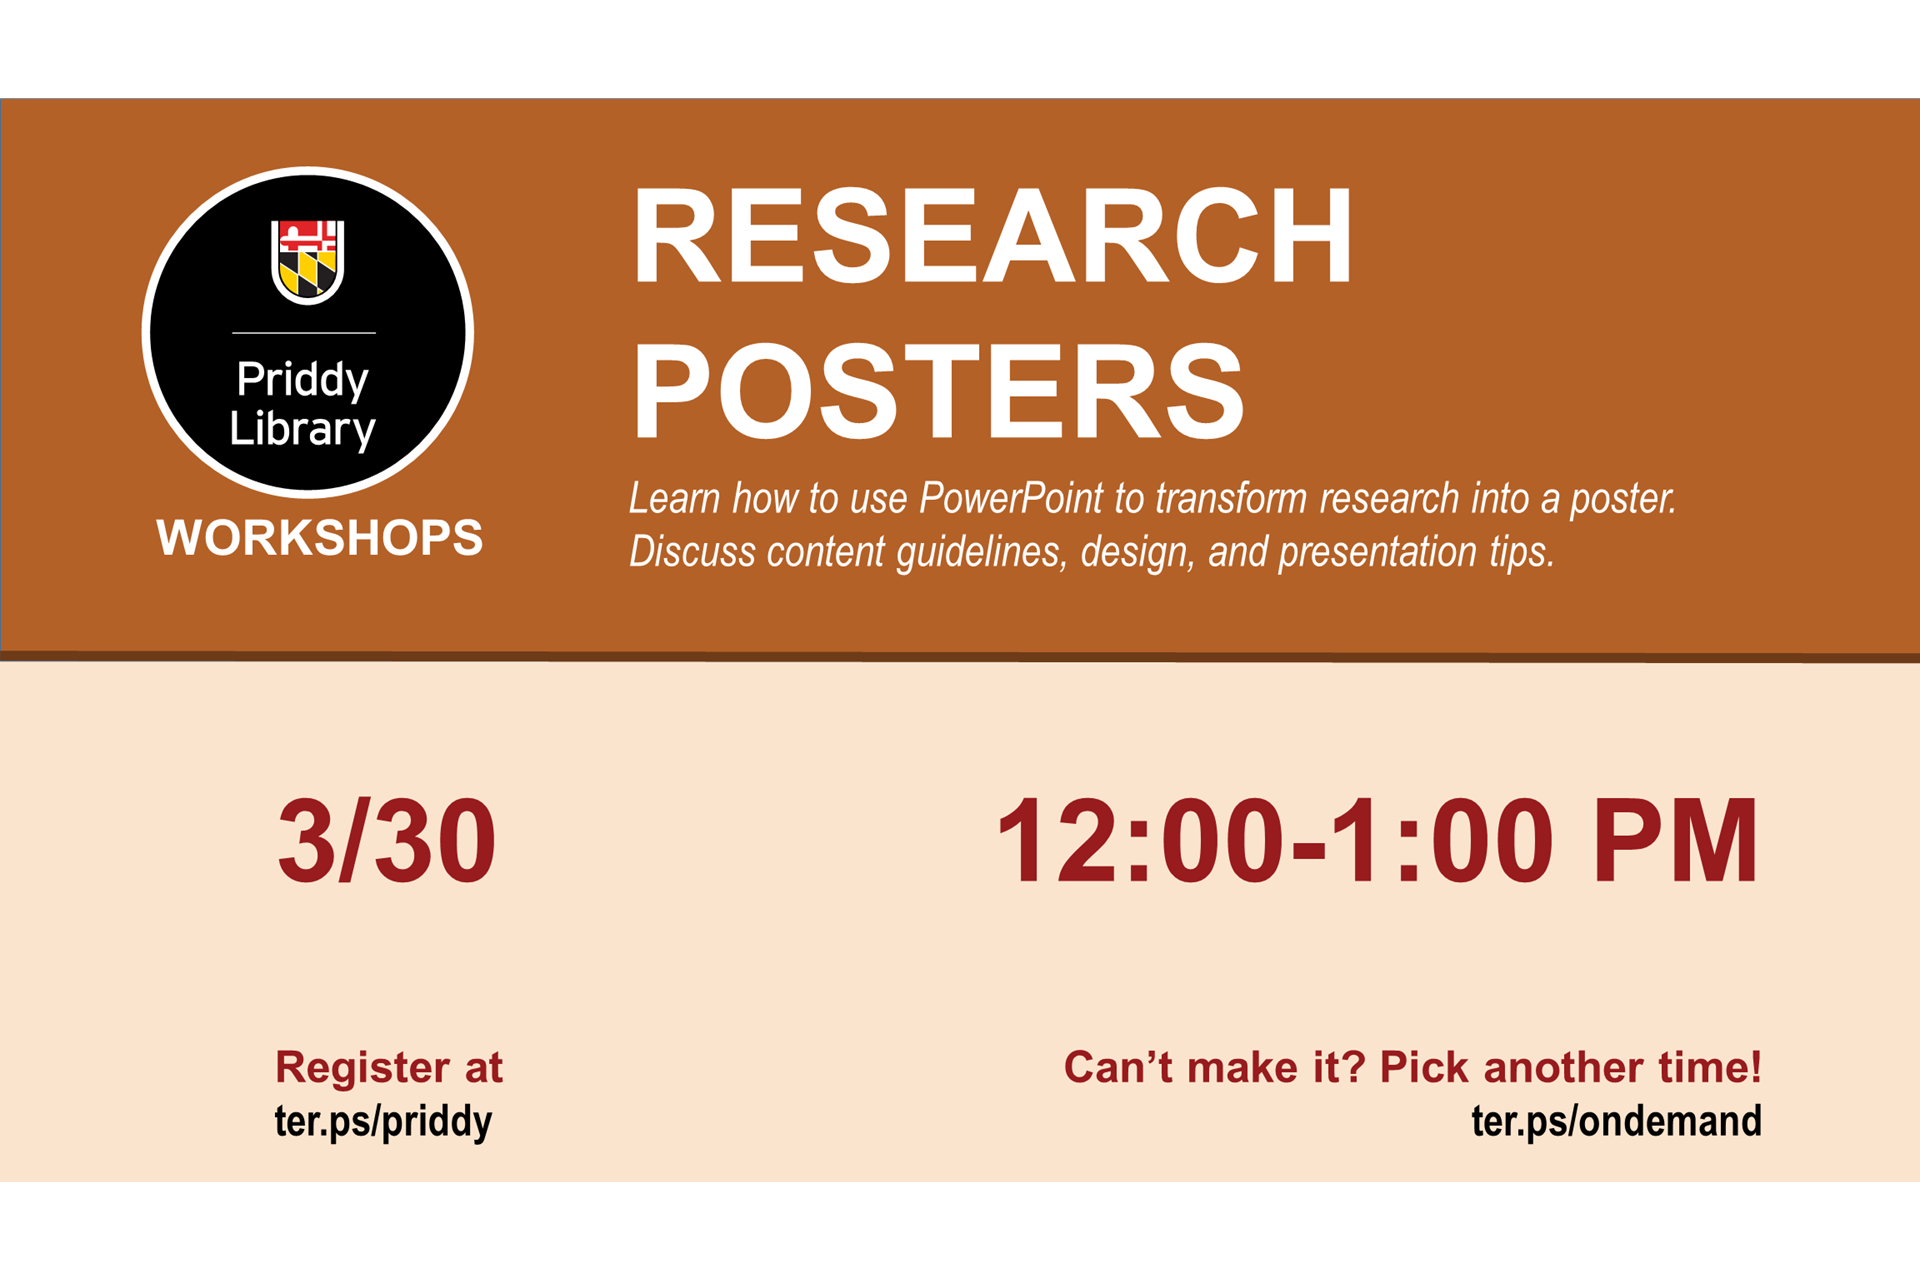 Research posters workshop flyer